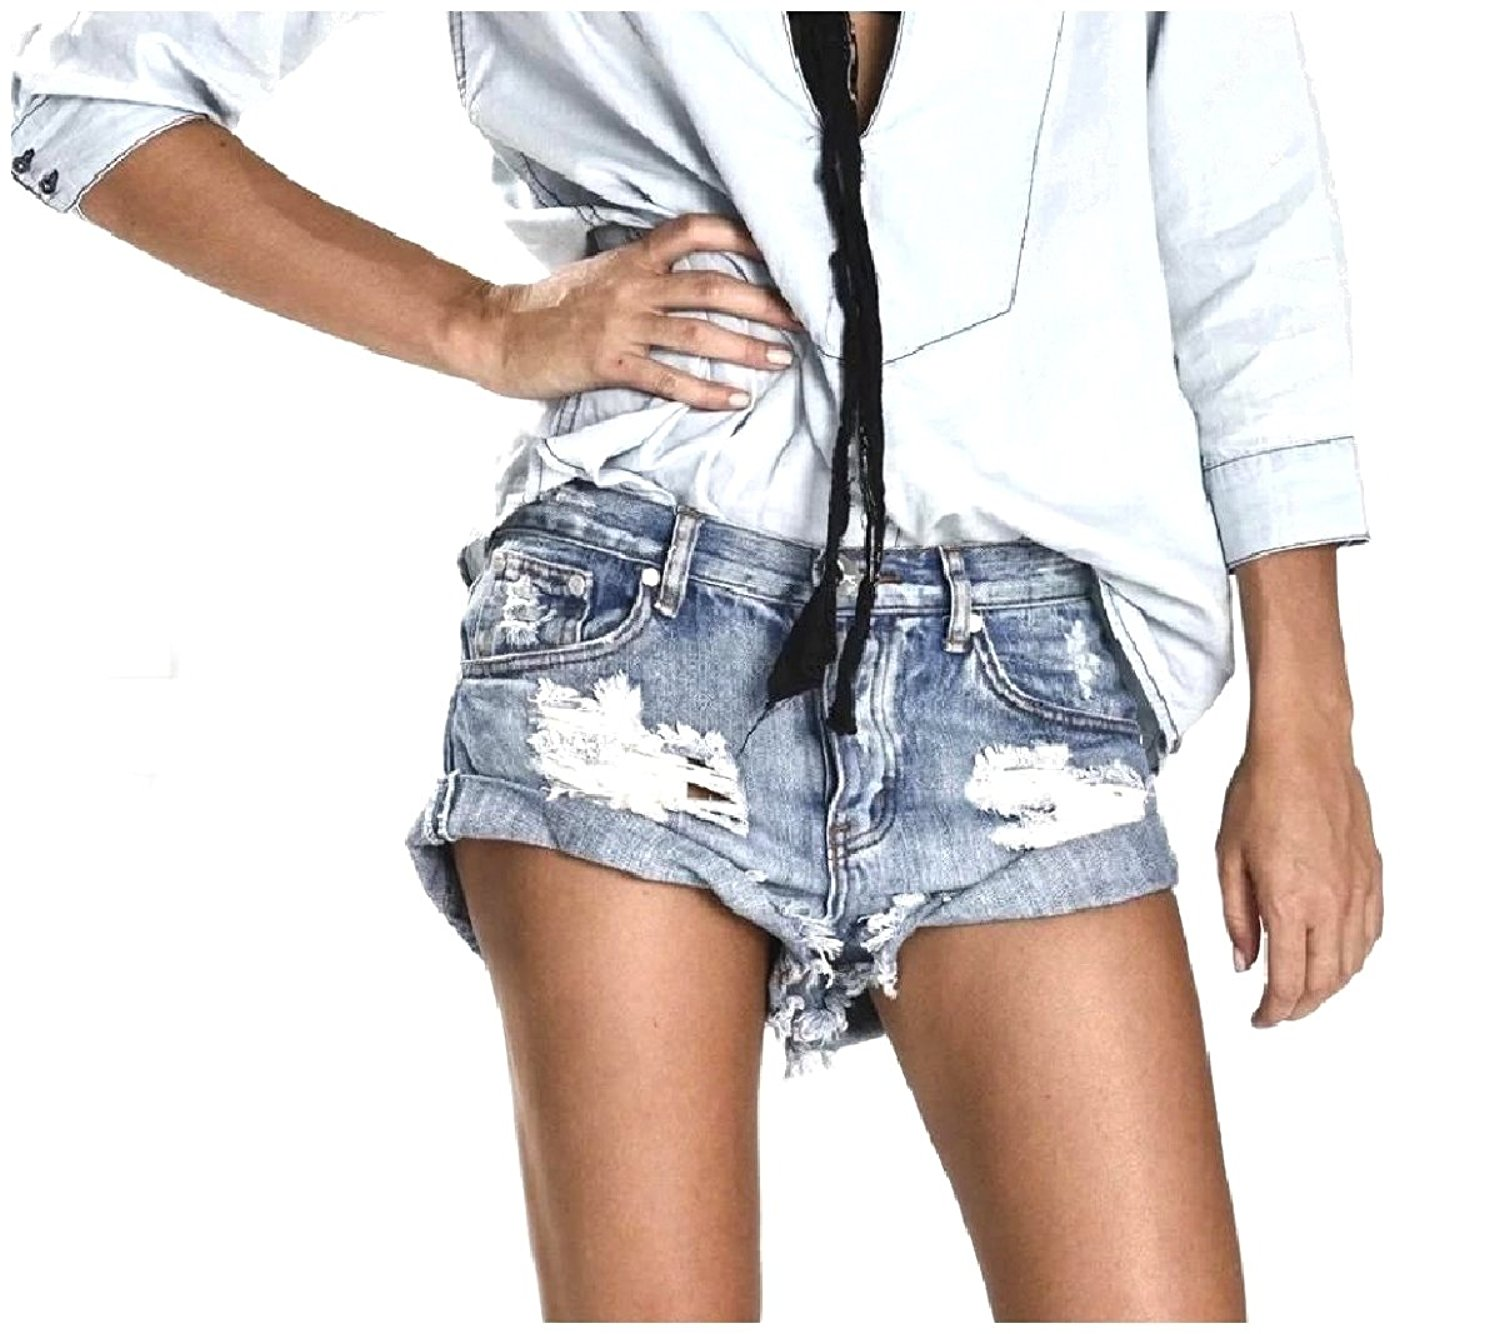 c63c2442d6 Get Quotations · Sheng Xi Womens Stretch Washed Hole Denim Rolled Cuff  Jeans Denim Shorts